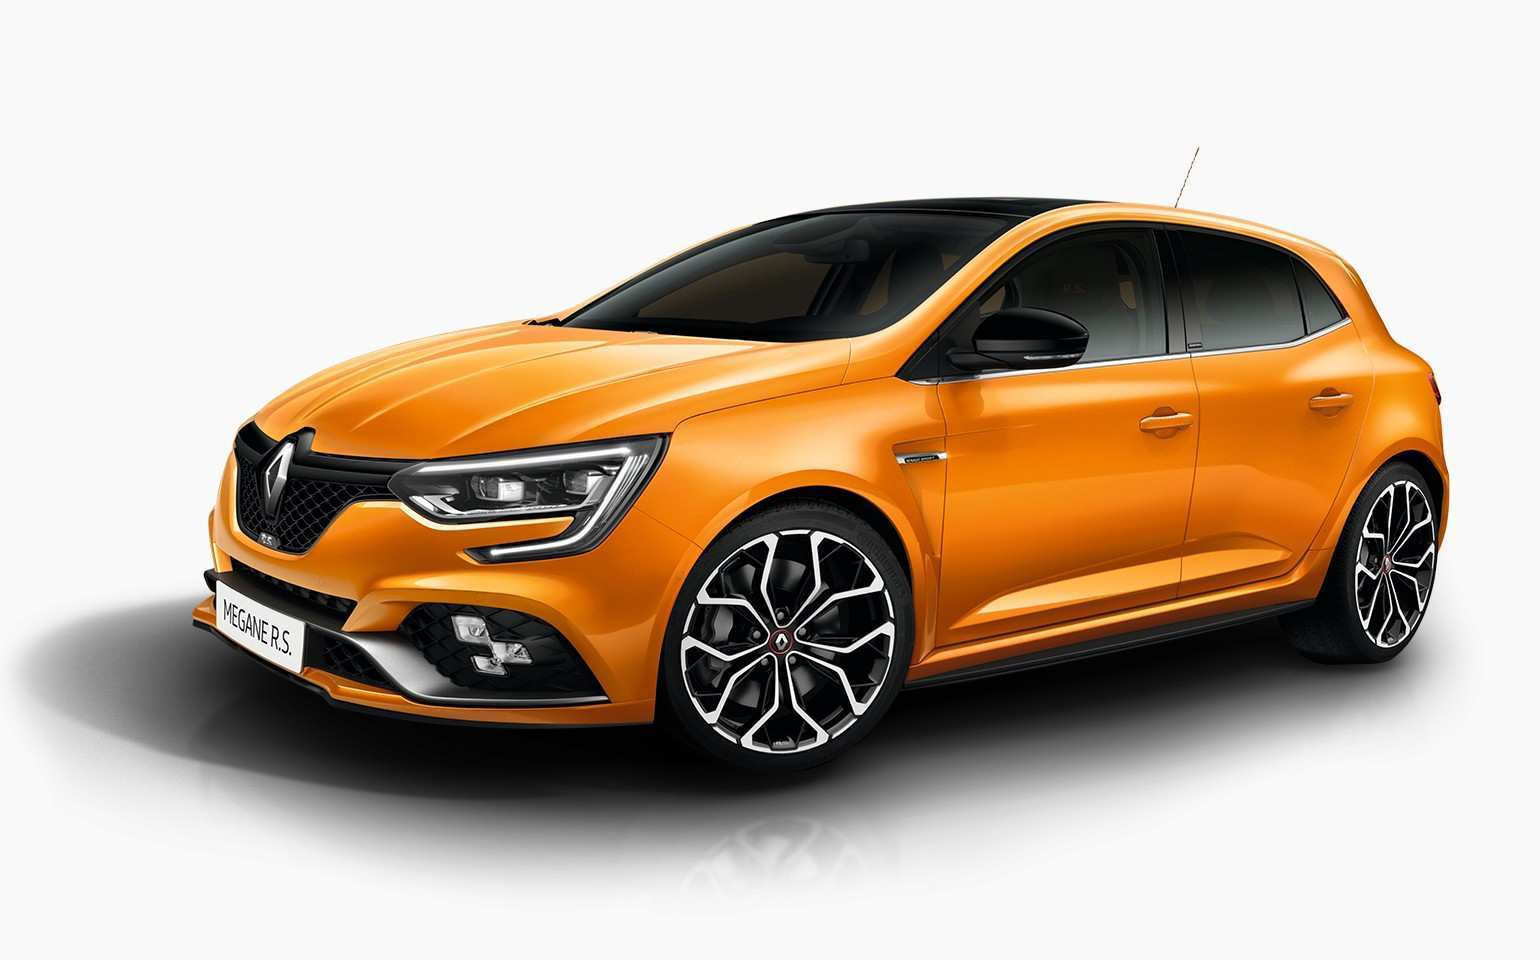 18 Gallery of 2019 Renault Megane Rs Reviews with 2019 Renault Megane Rs